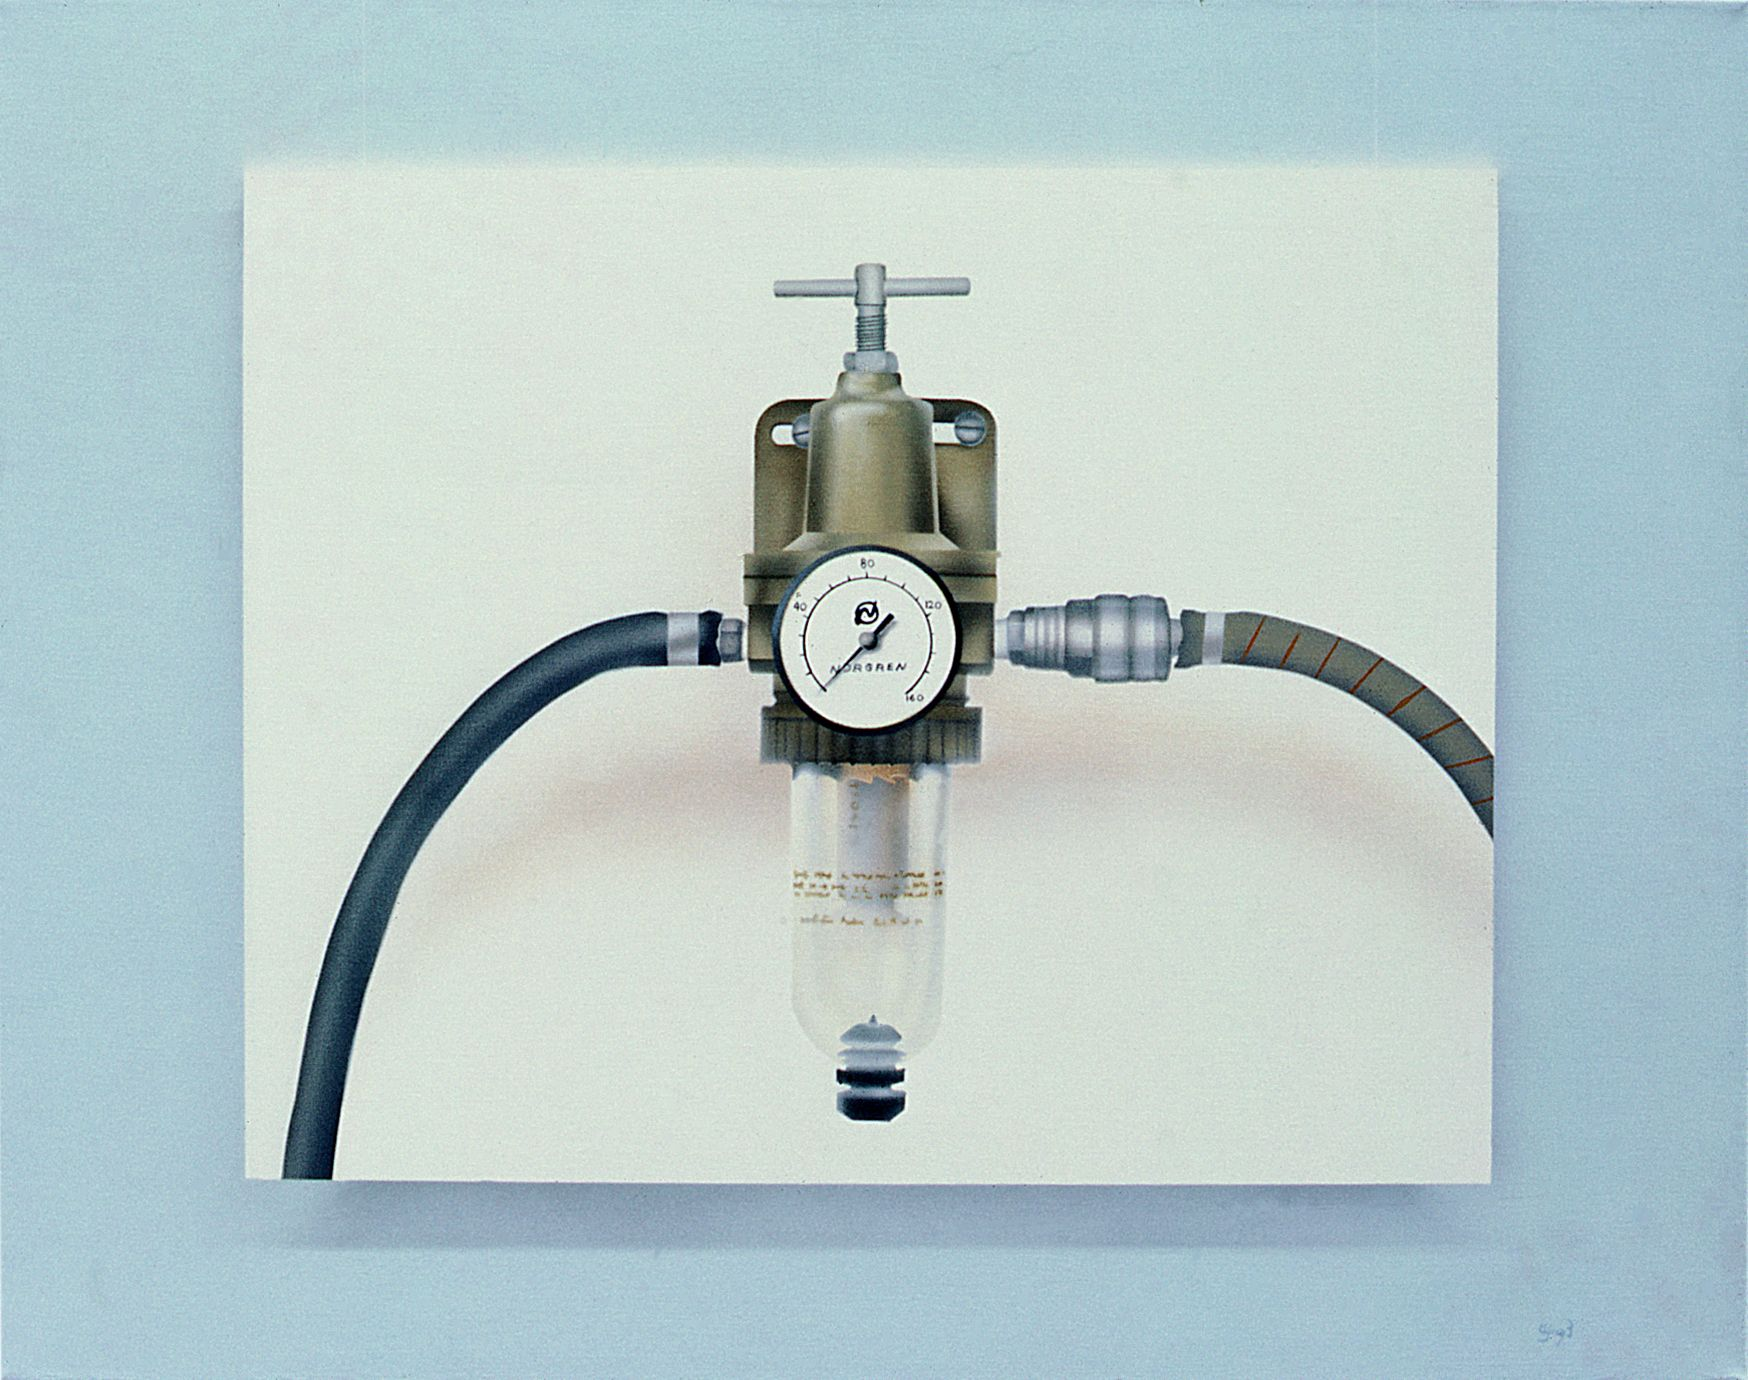 Pressure Gauge, 1972, Acrylic on canvas, privat collection New York